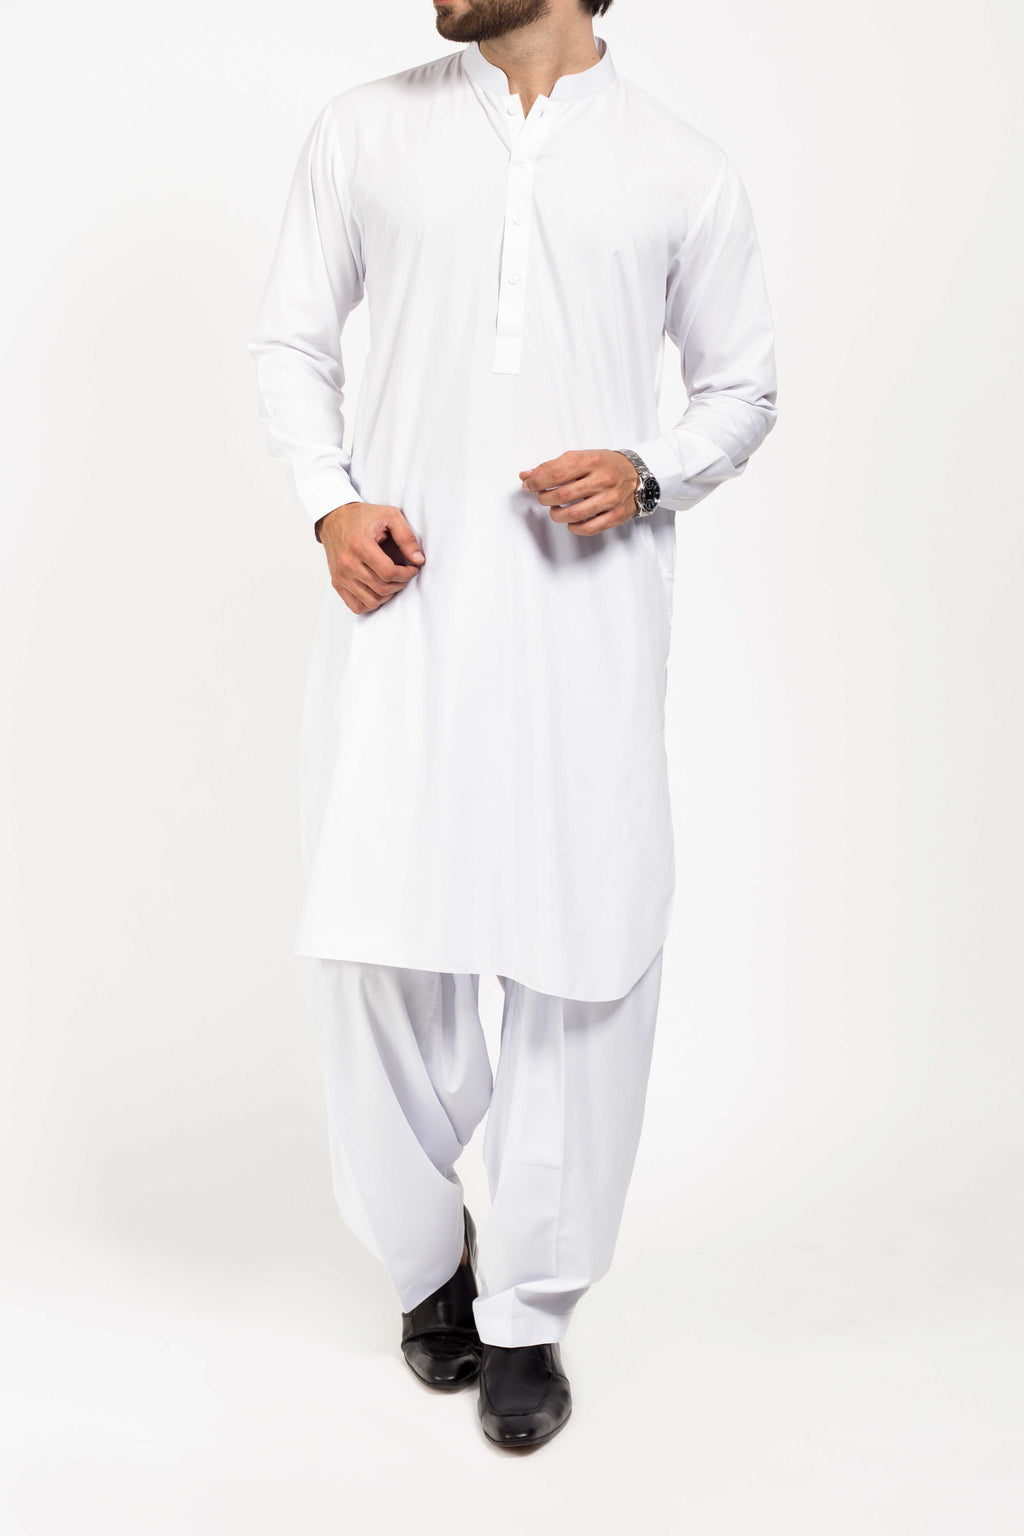 Image of   in White SKU: RQ-39160-Medium-White